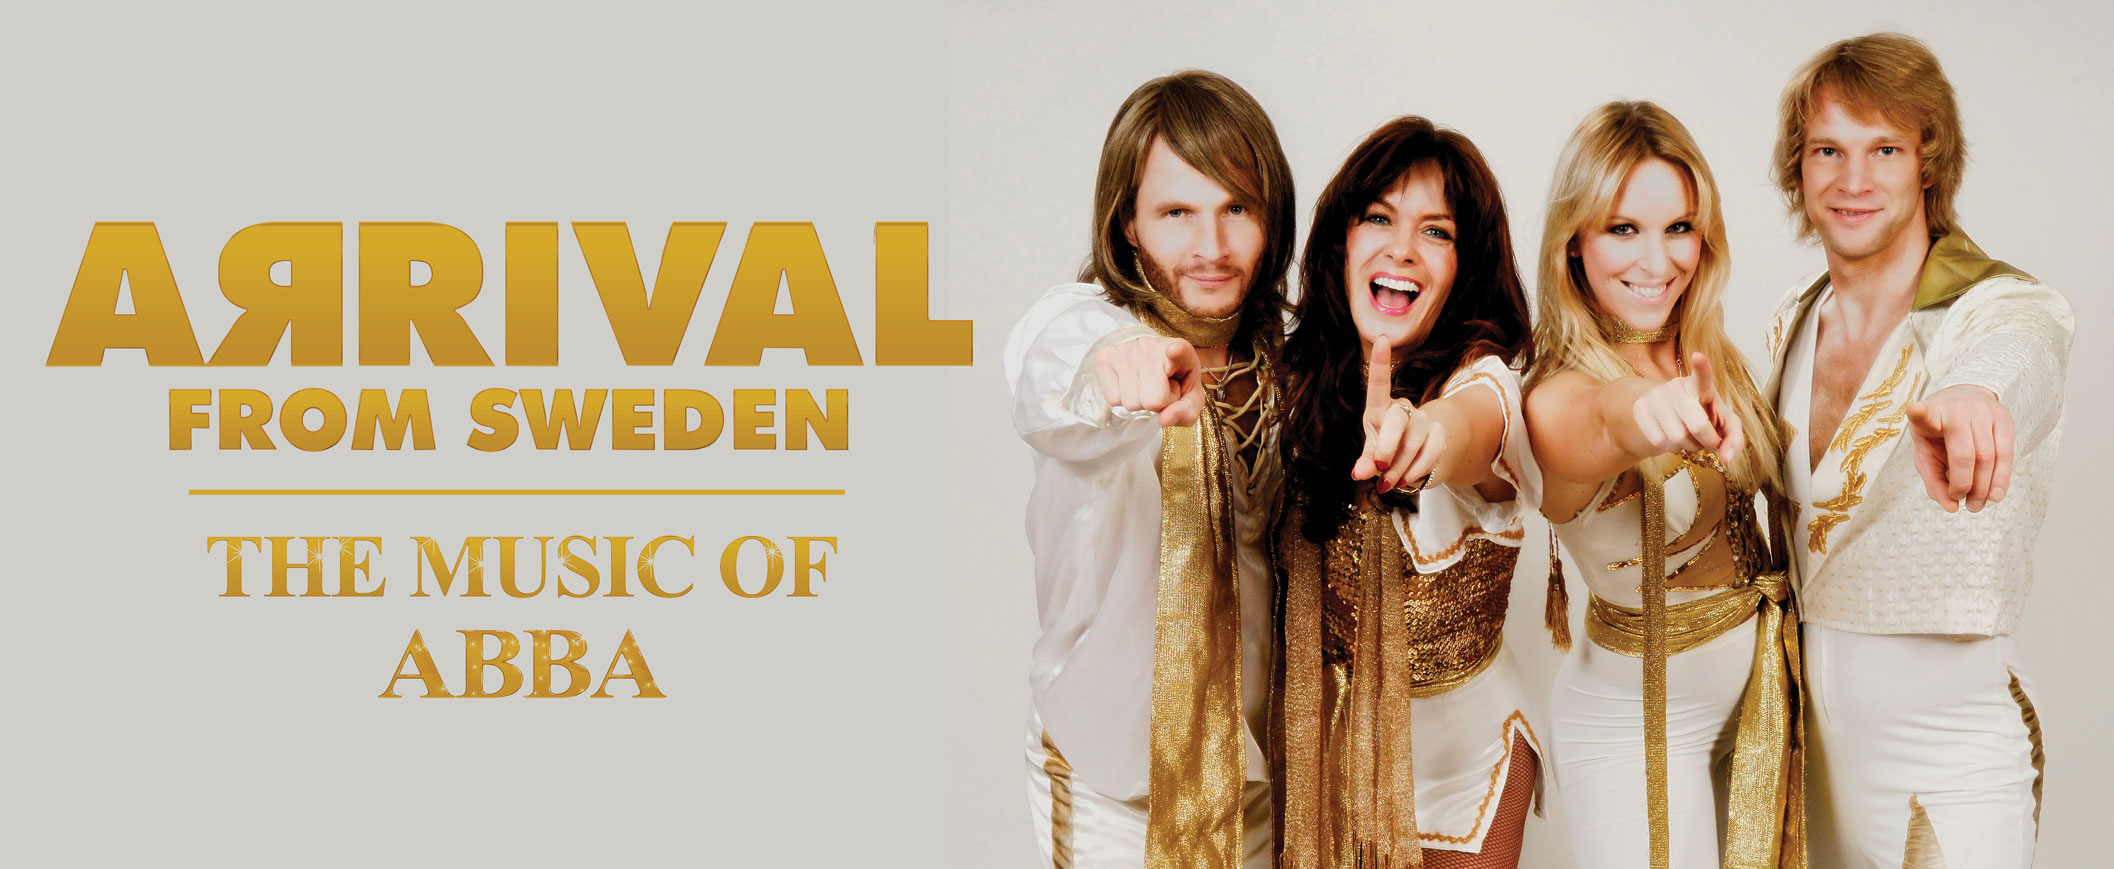 Photo of ARRIVAL from Sweden: ABBA for the Shipshewana Event